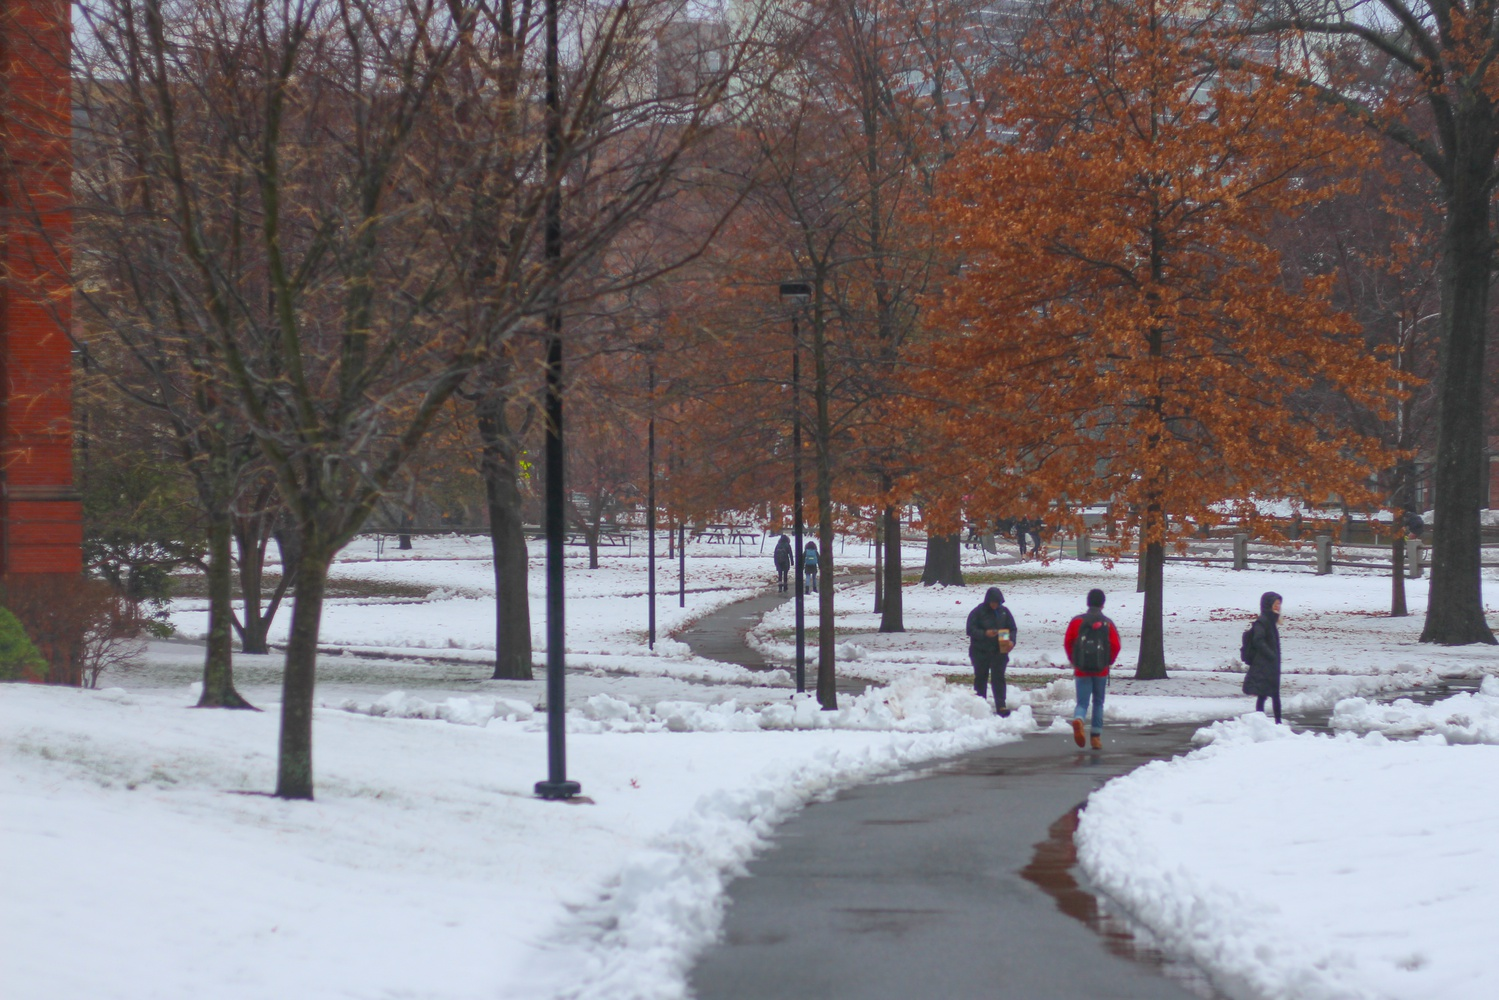 The campus received a substantial amount of snow to mark the advent of meteorological winter.